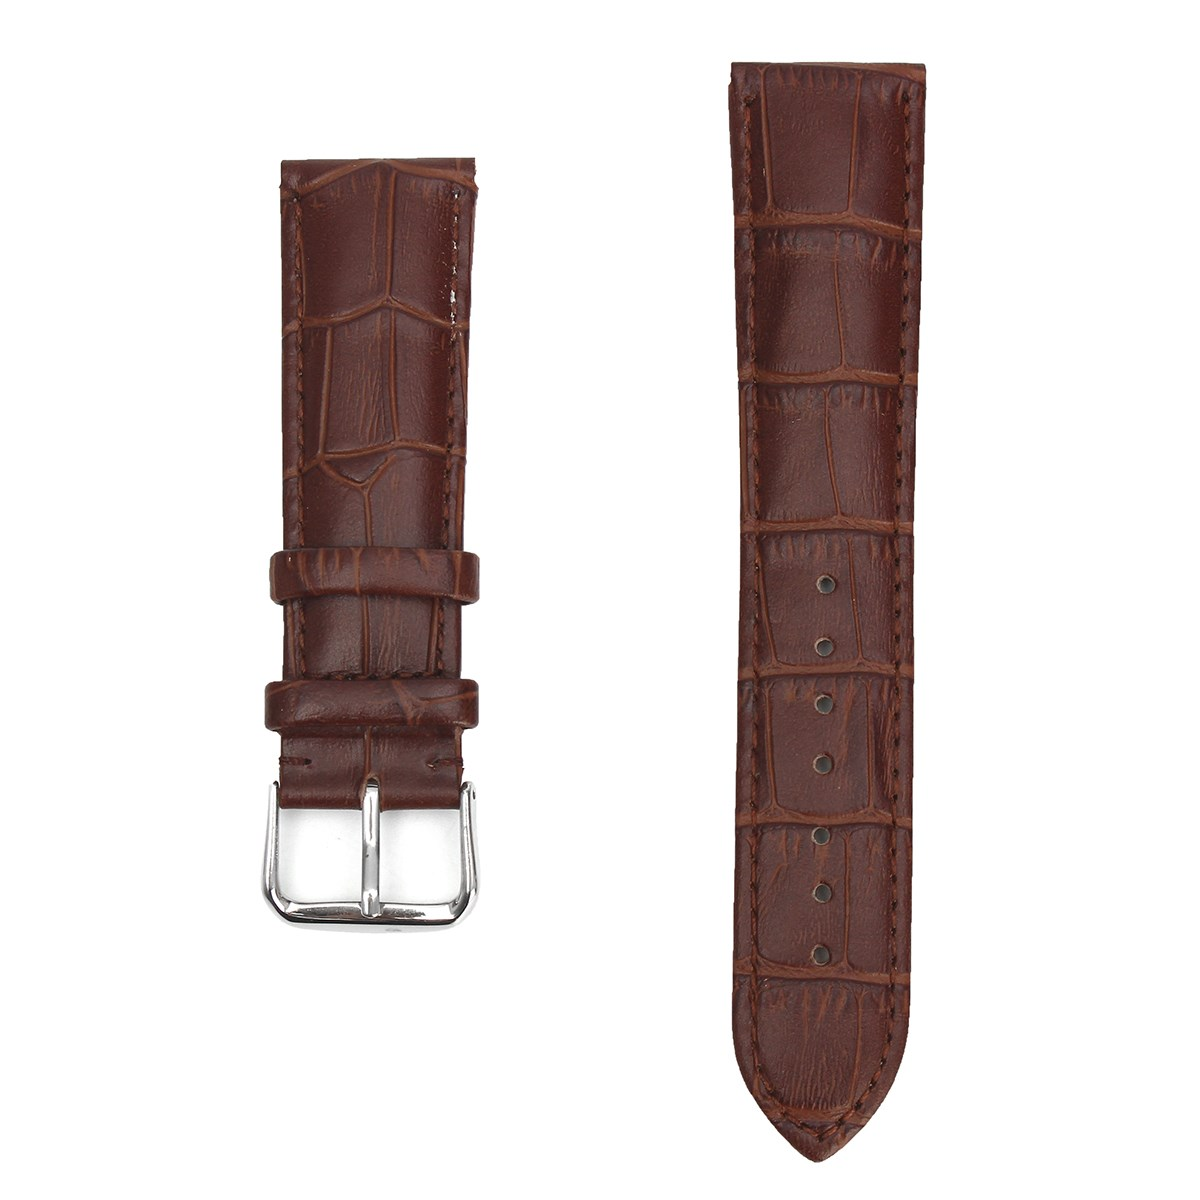 New 22mm Durable Genuine Leather Wrist Watch Strap Belts Stainless Steel Buckle Watchband Men For/BULOVA Watch Accessories durable canvas fabric strap steel buckle wrist watch band 20mm 22mm pin buckle durable replacement watchband nato strap colorful